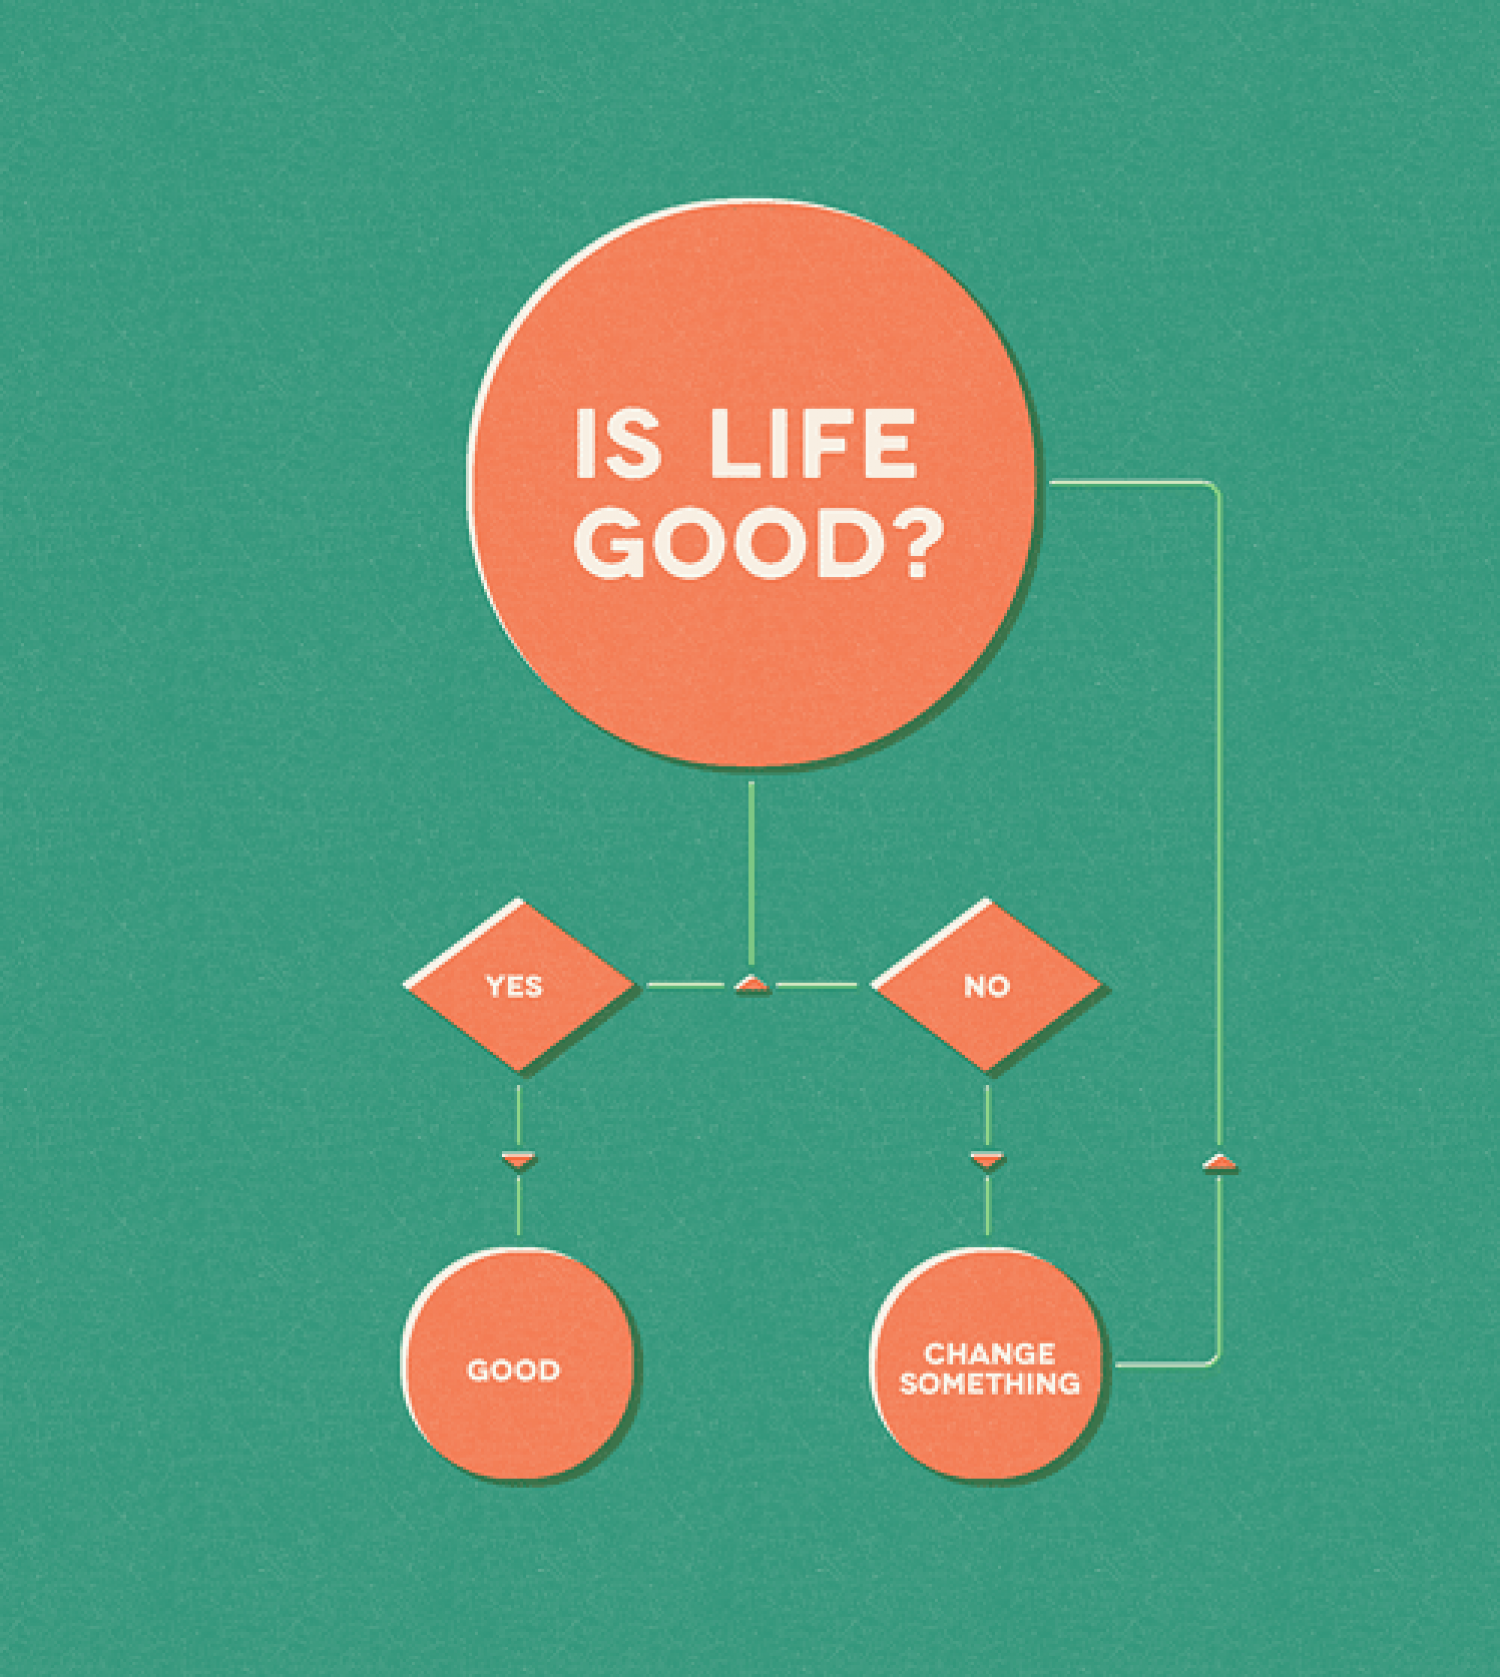 what is a good life The good life or good life may refer to: eudaimonia, a philosophical term for the life that one would like to live, originally associated with aristotle ethics and environmental philosophy buen vivir (good living), an alternative concept of development film la.